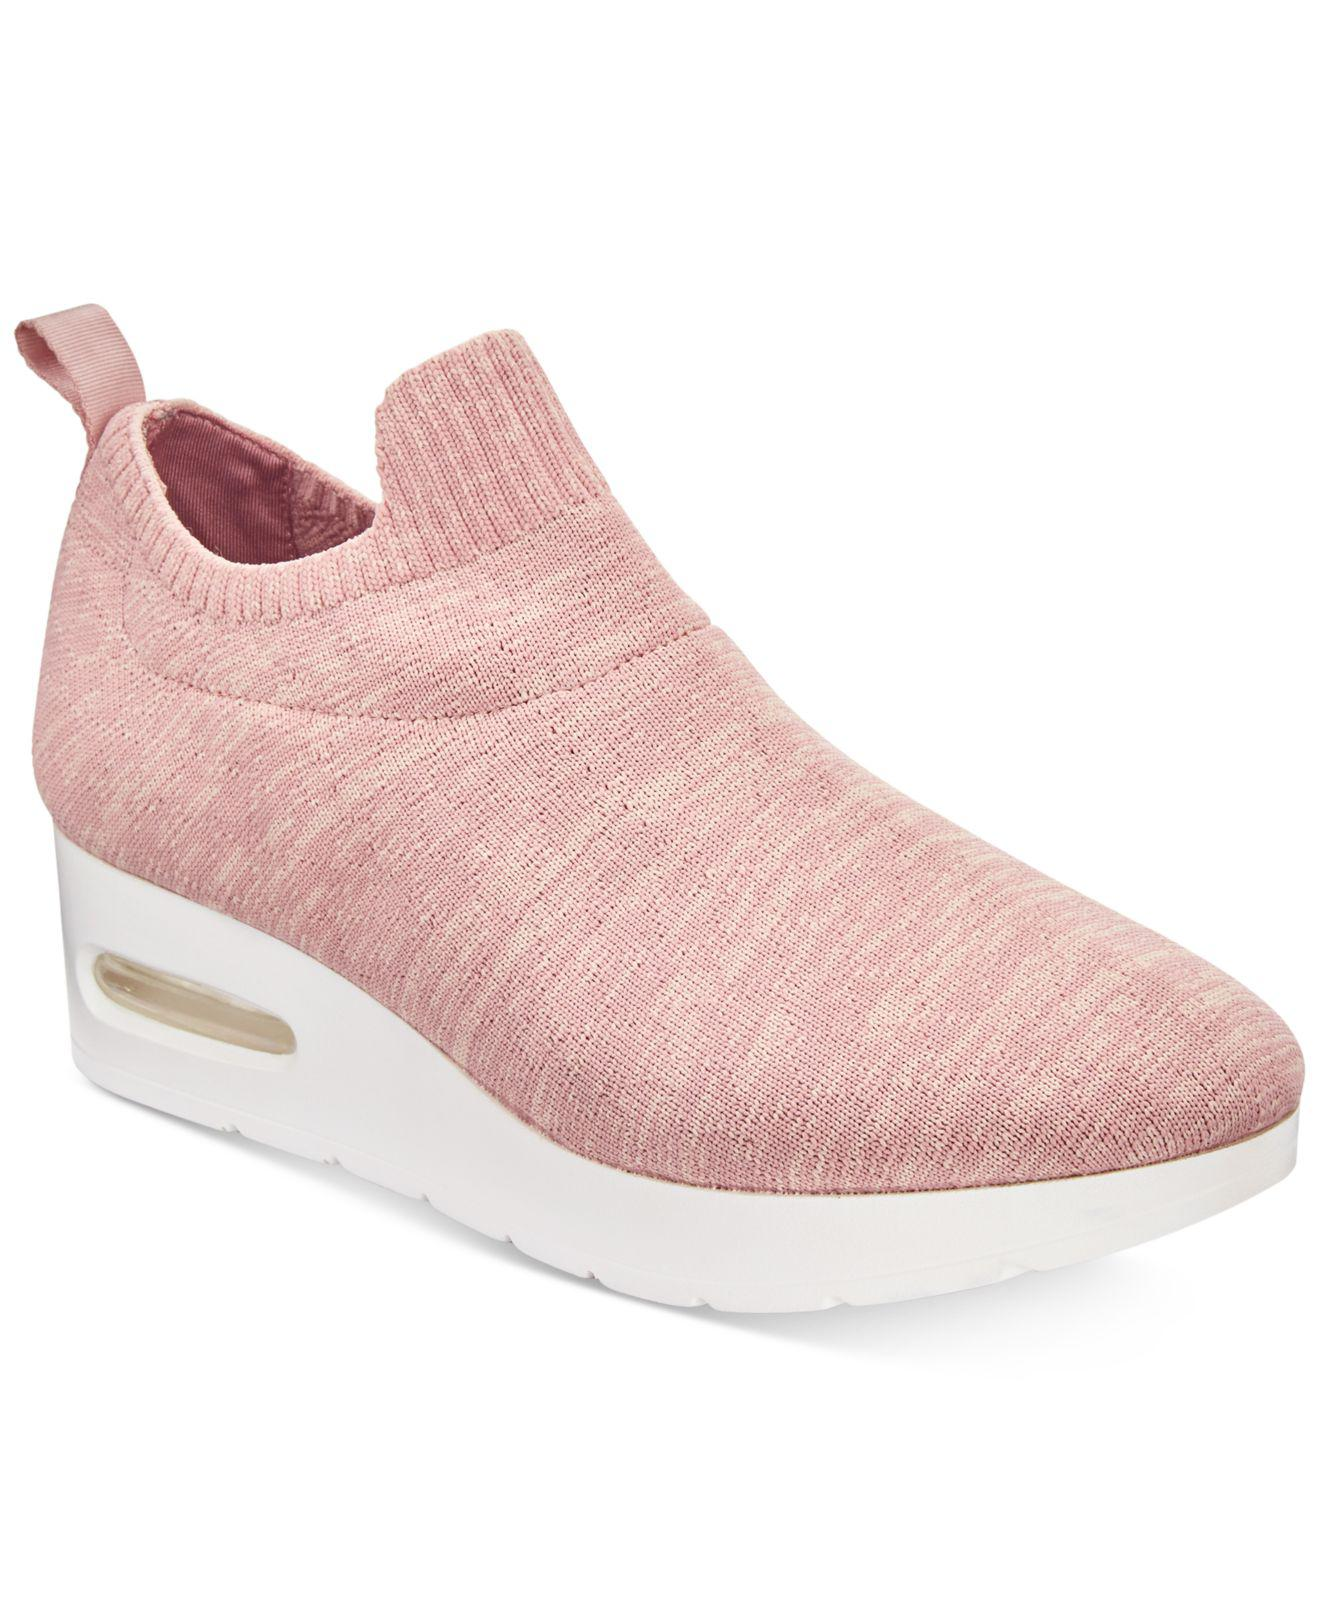 a339aba4348 Lyst - DKNY Angie Slip-on Shoes in Pink